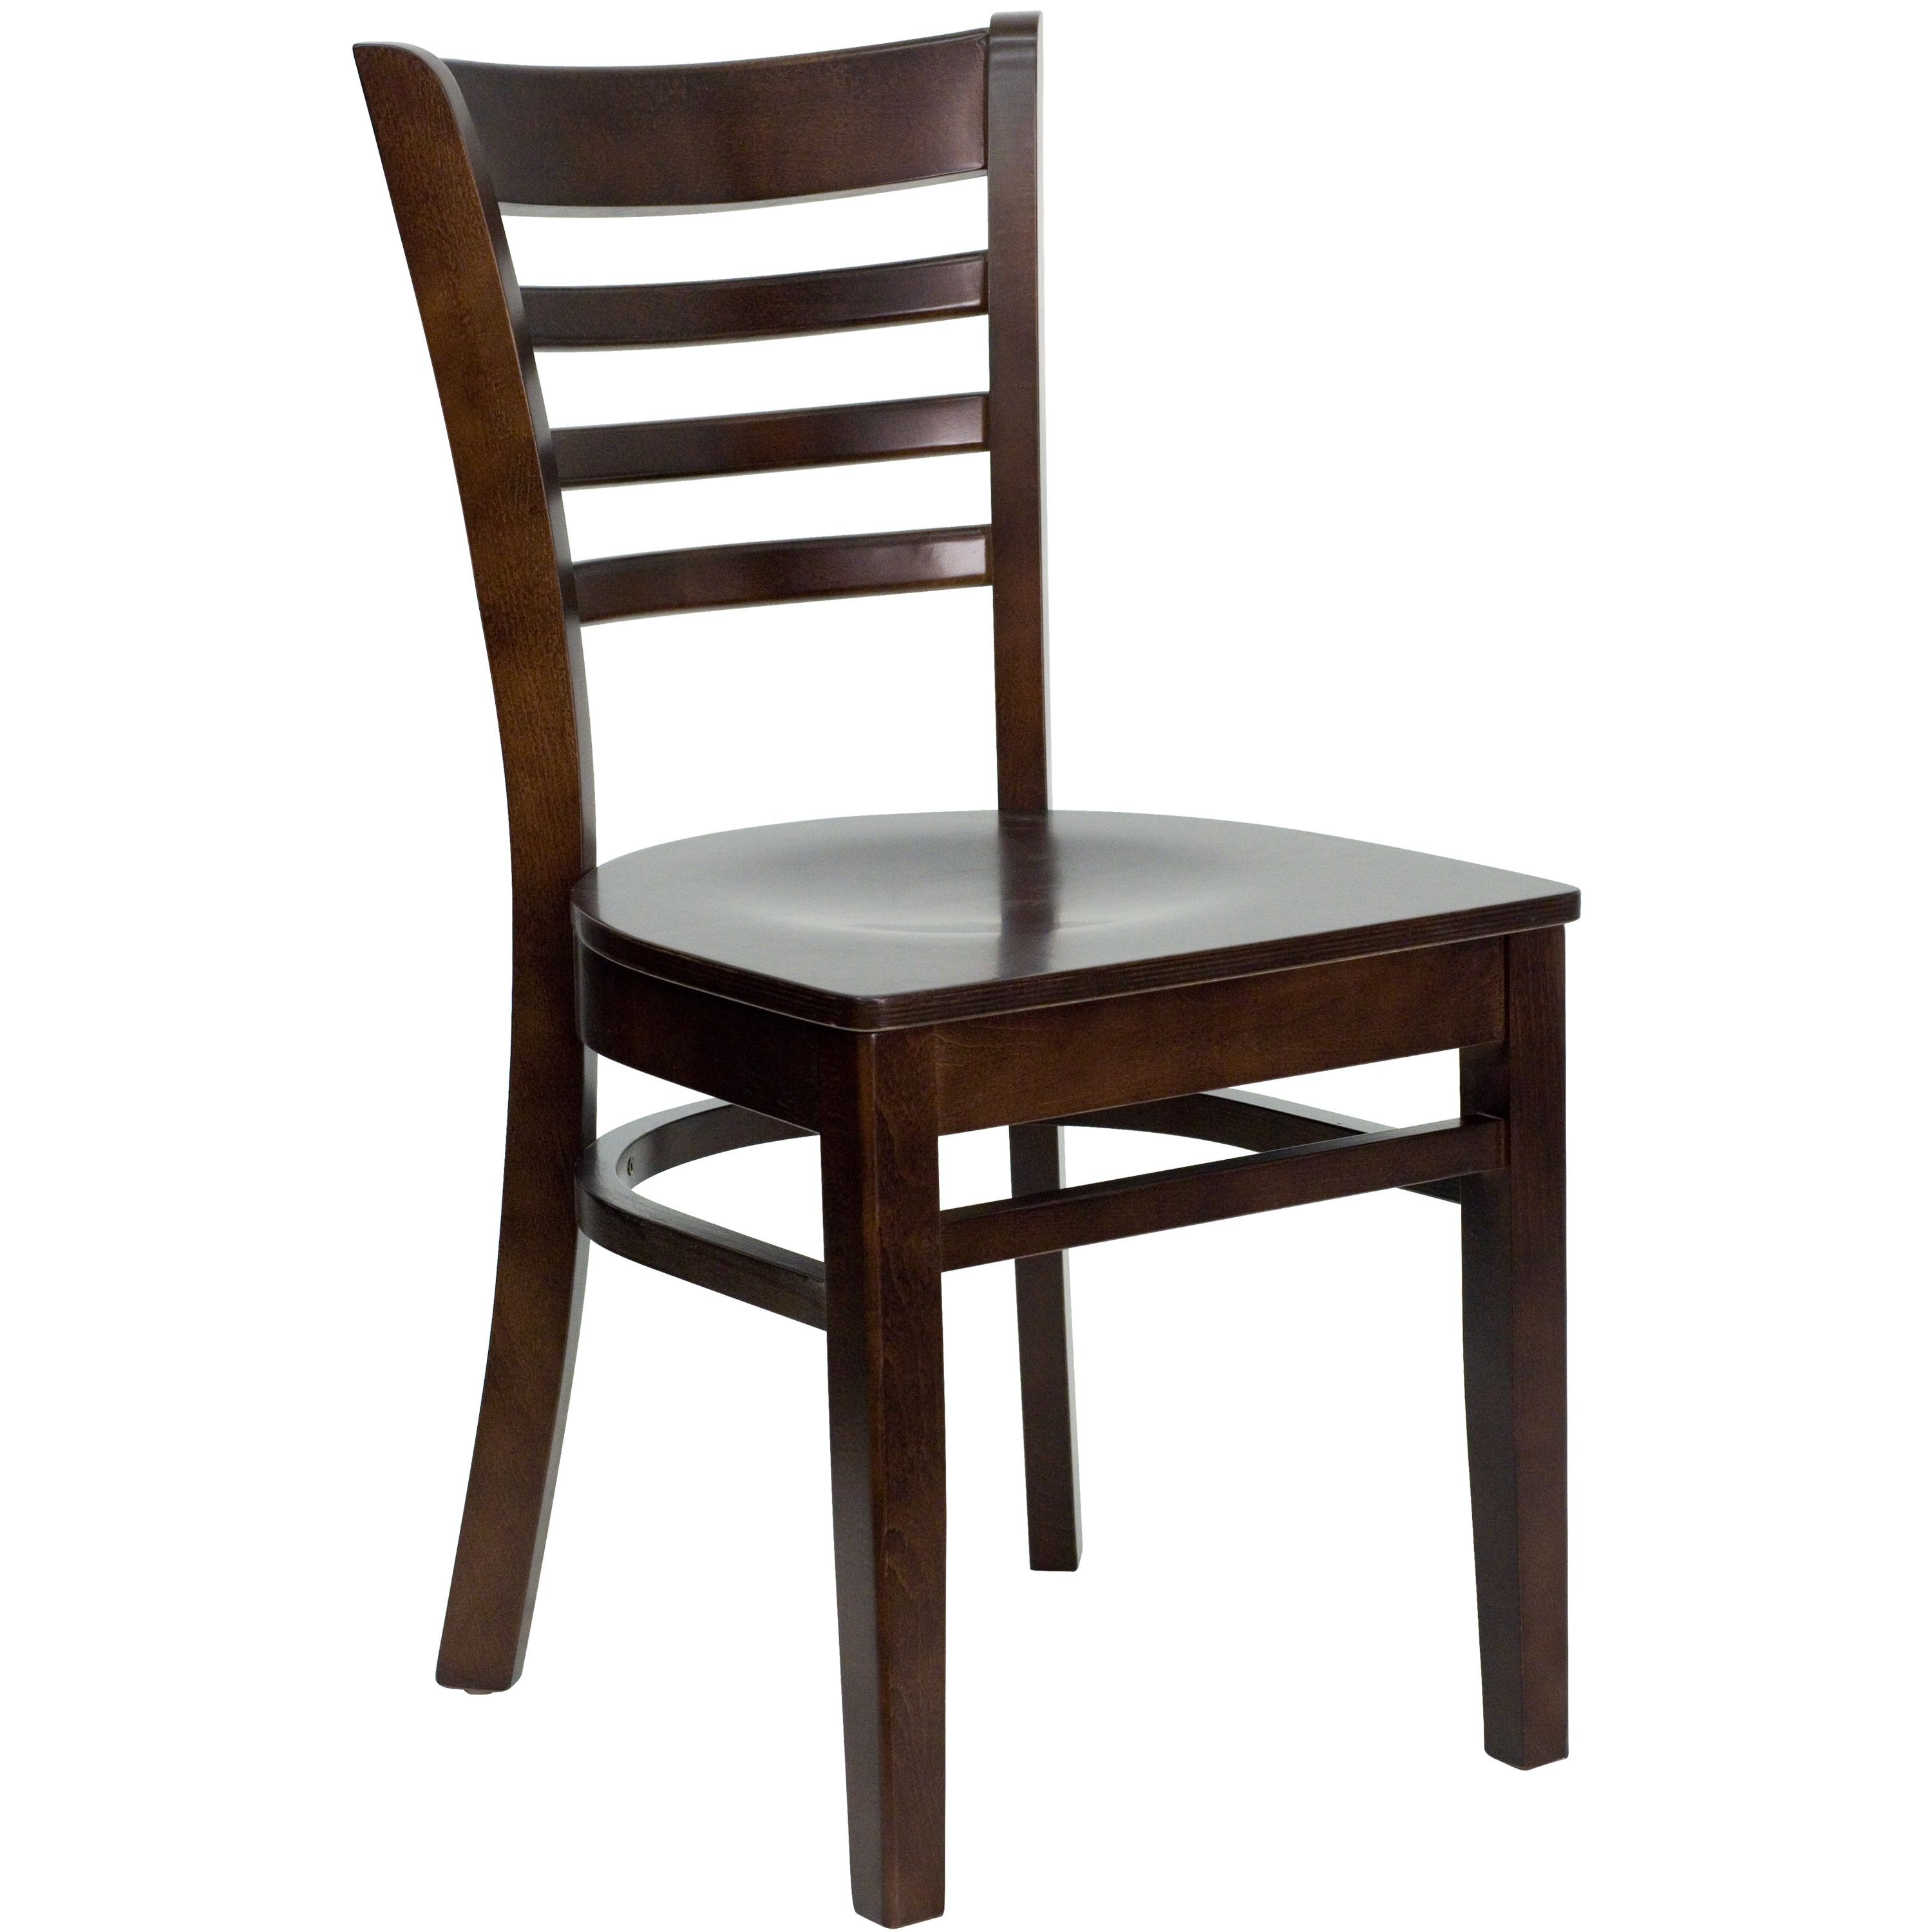 Flash Furniture XU-DGW0005LAD-WAL-GG Ladder Back Wood Chair with Walnut Finish